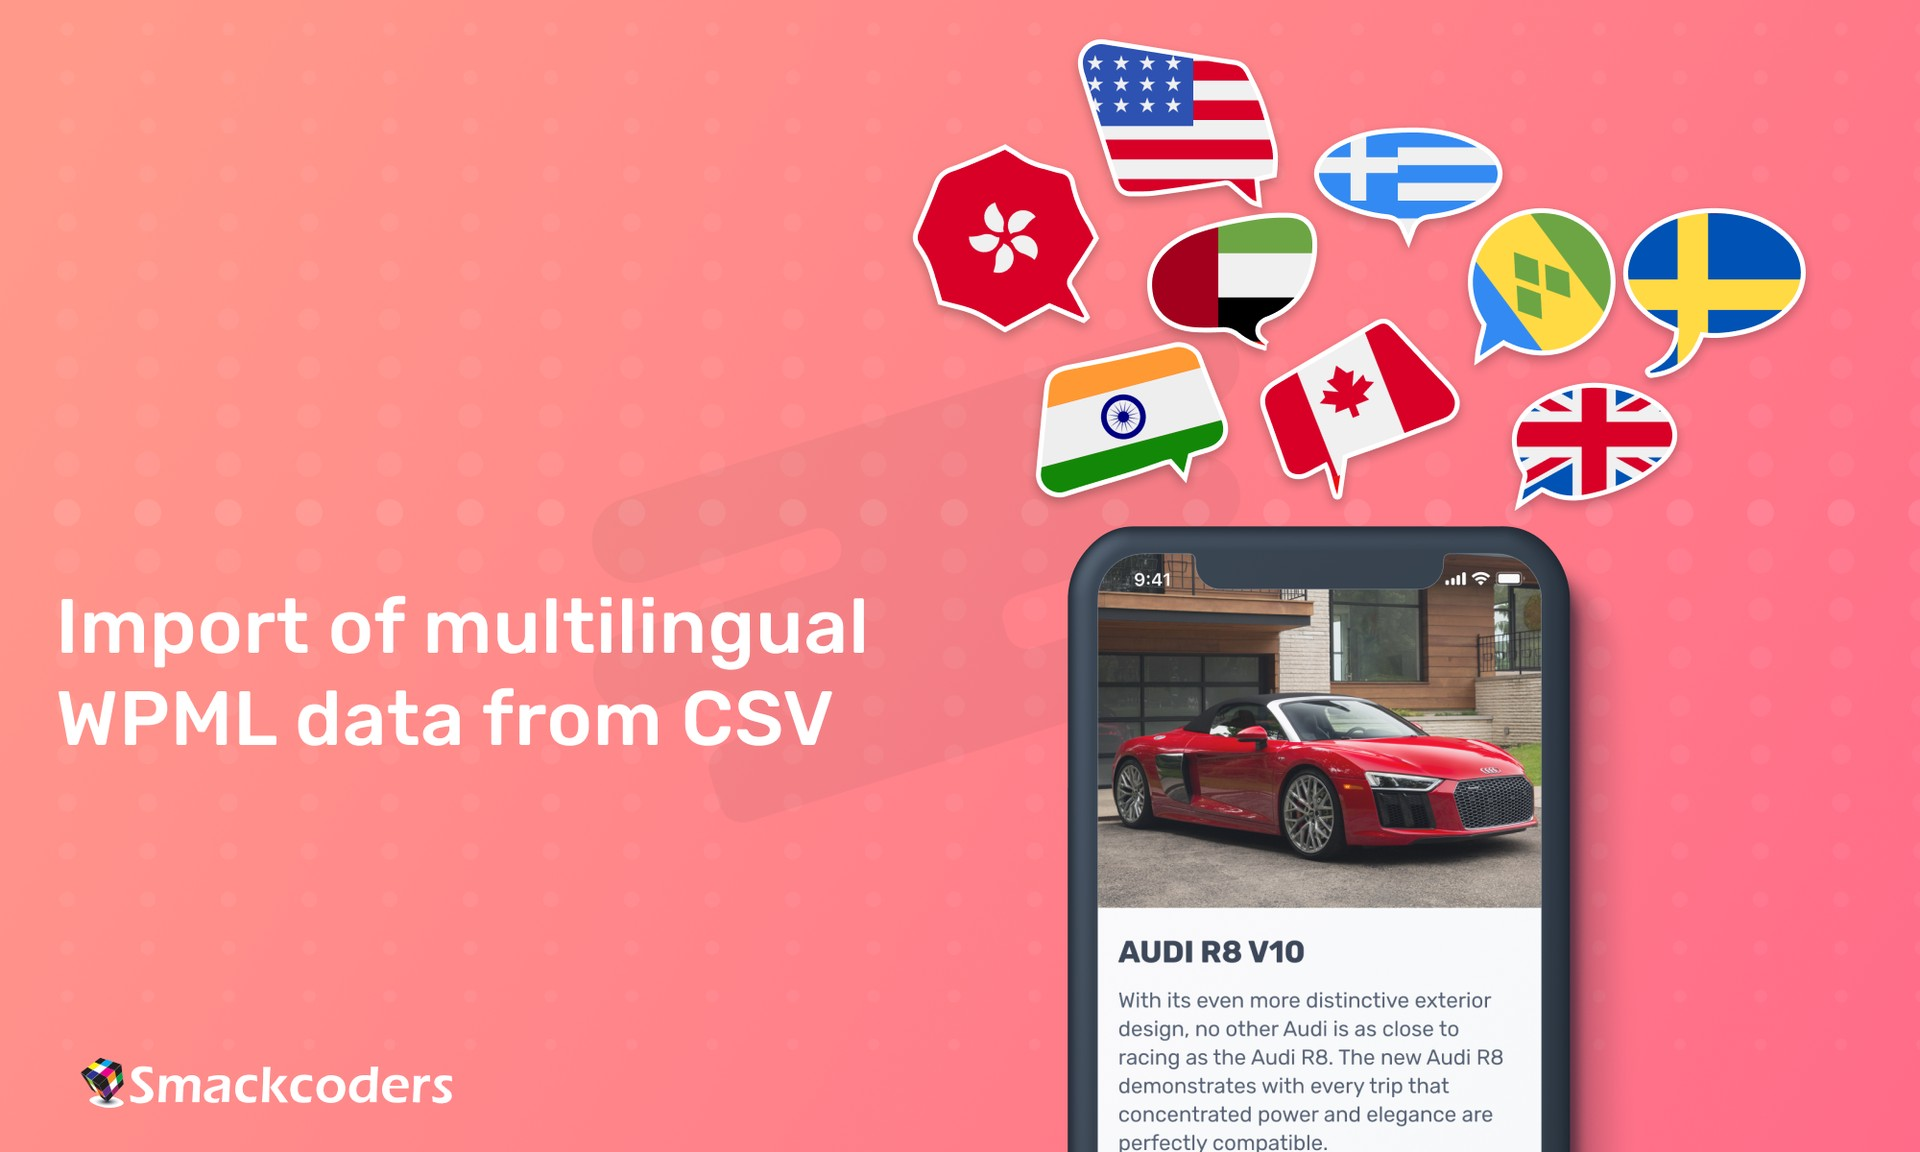 Import-of-WPML-multilingual-data-from-CSV-Blog-Image